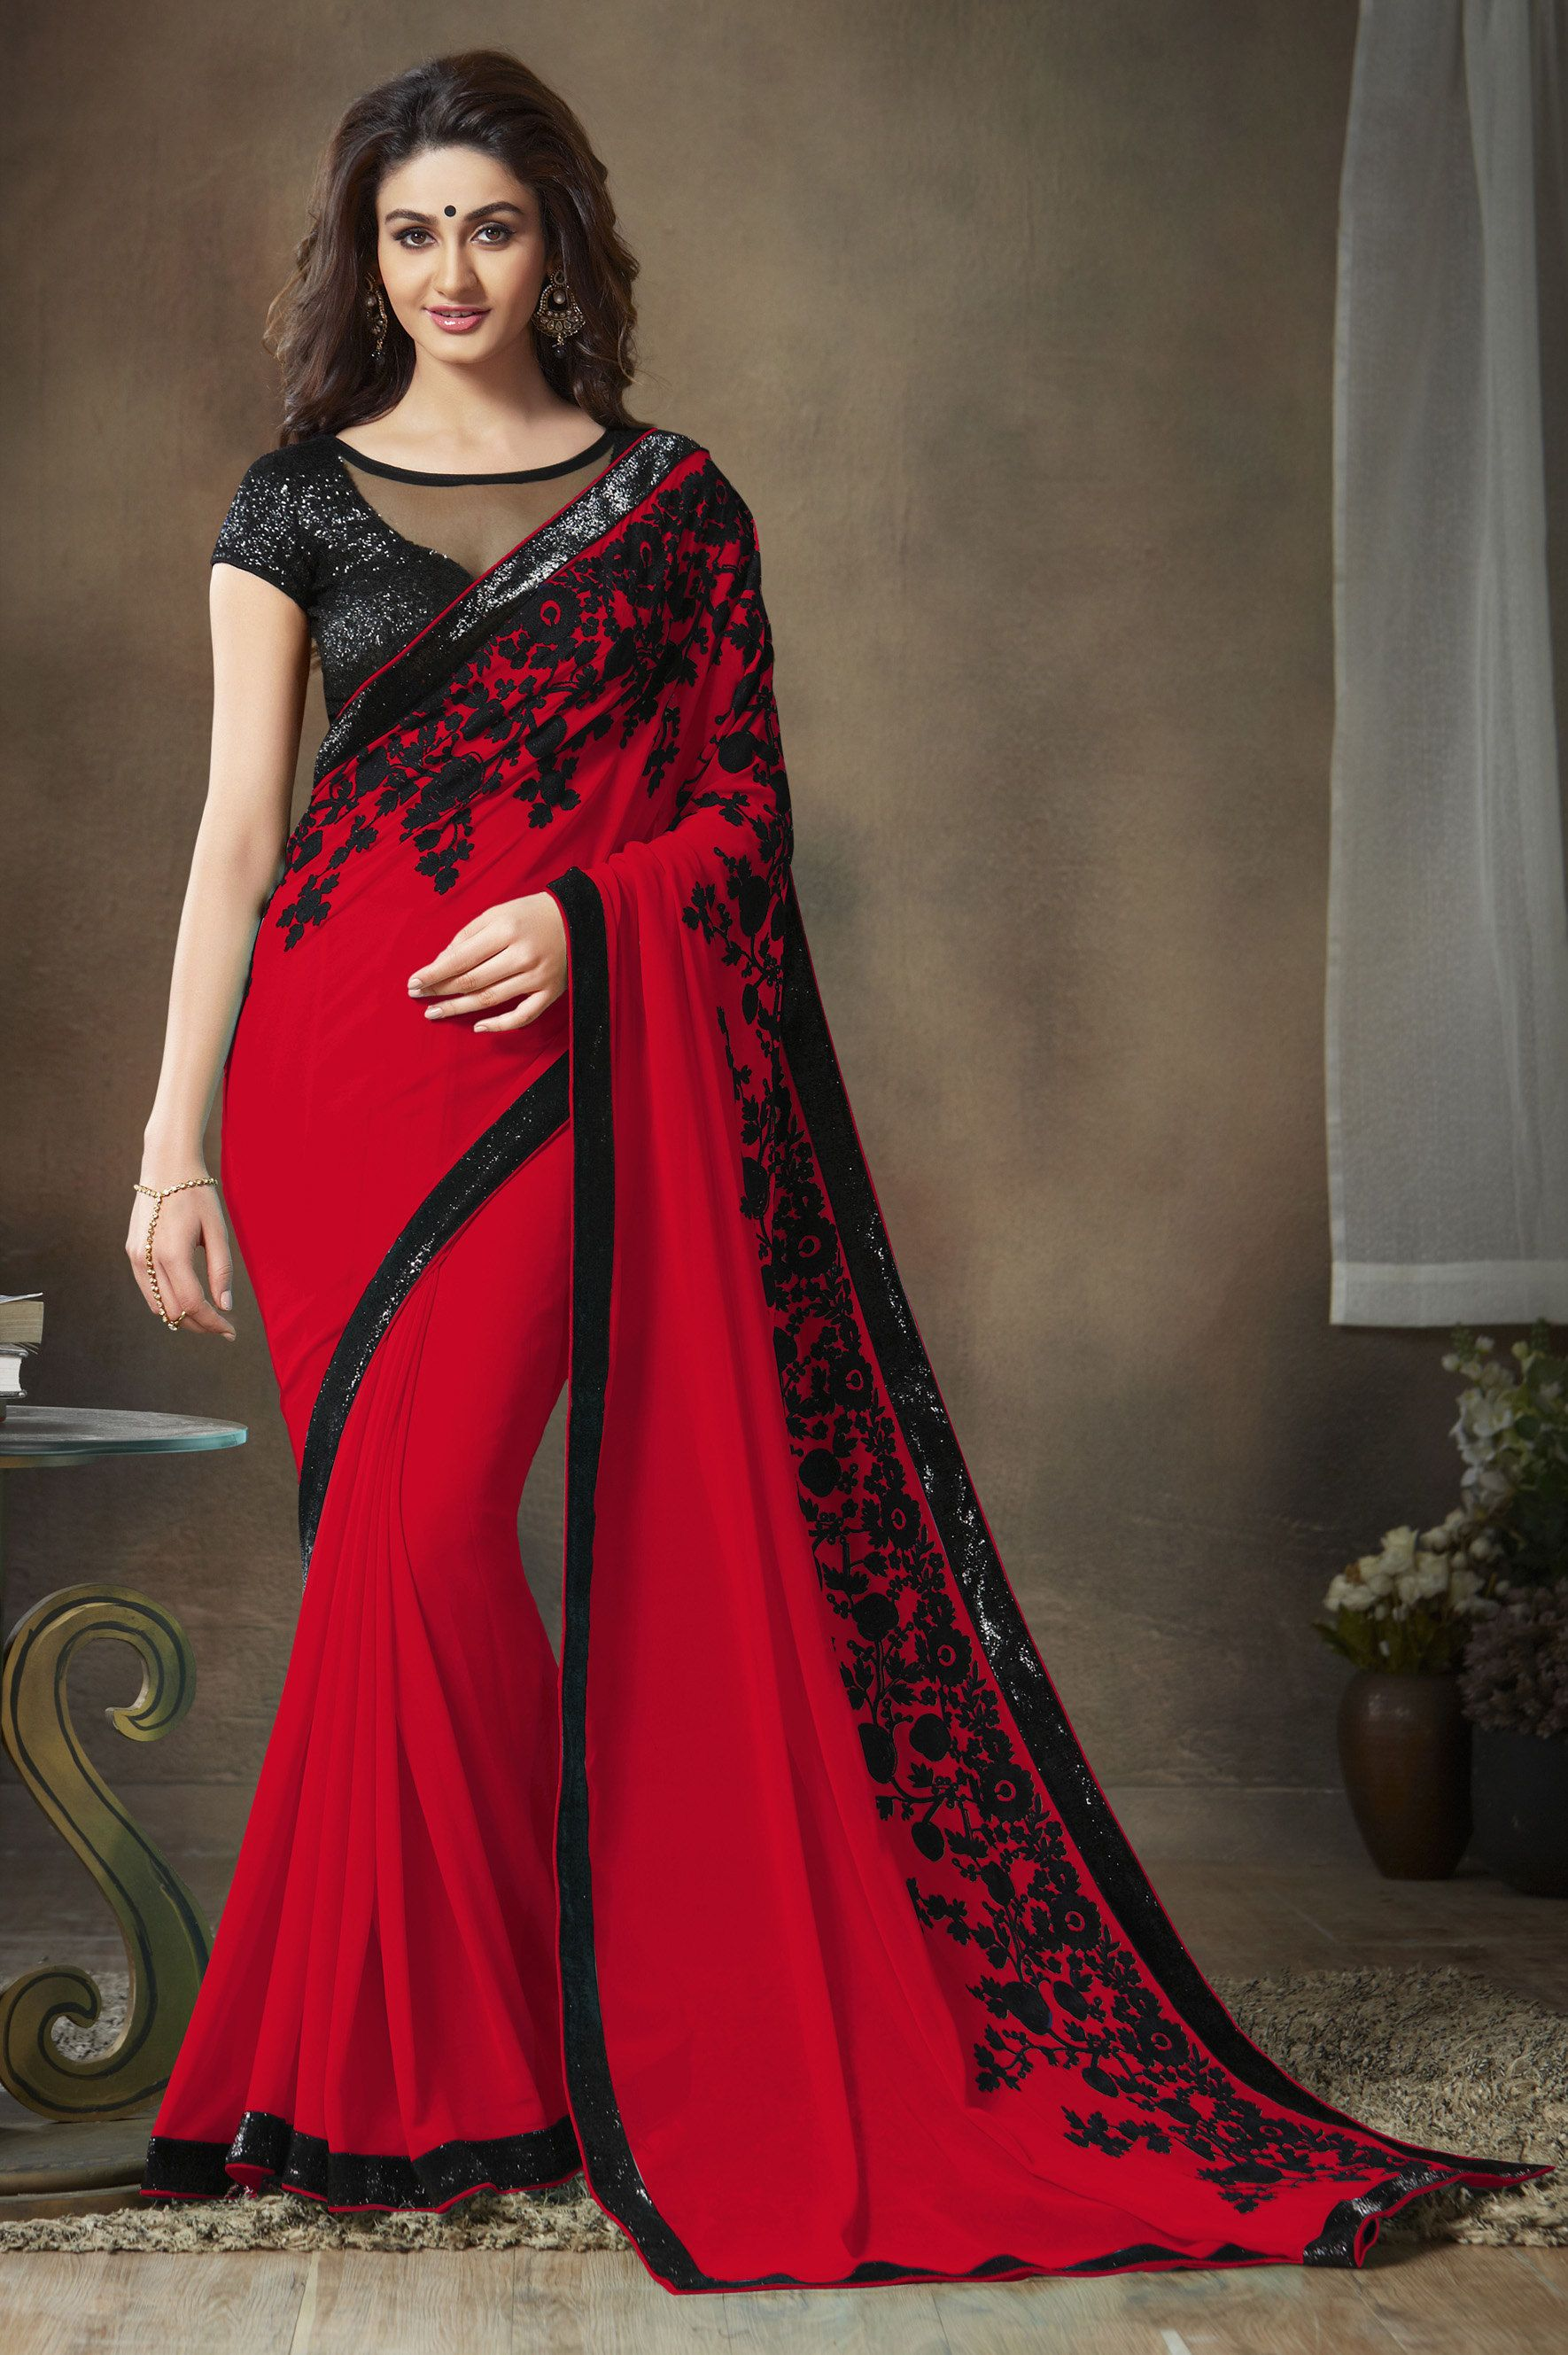 f274c3edd7 red saree with black floral border. | Stuff to buy in 2019 | Party ...